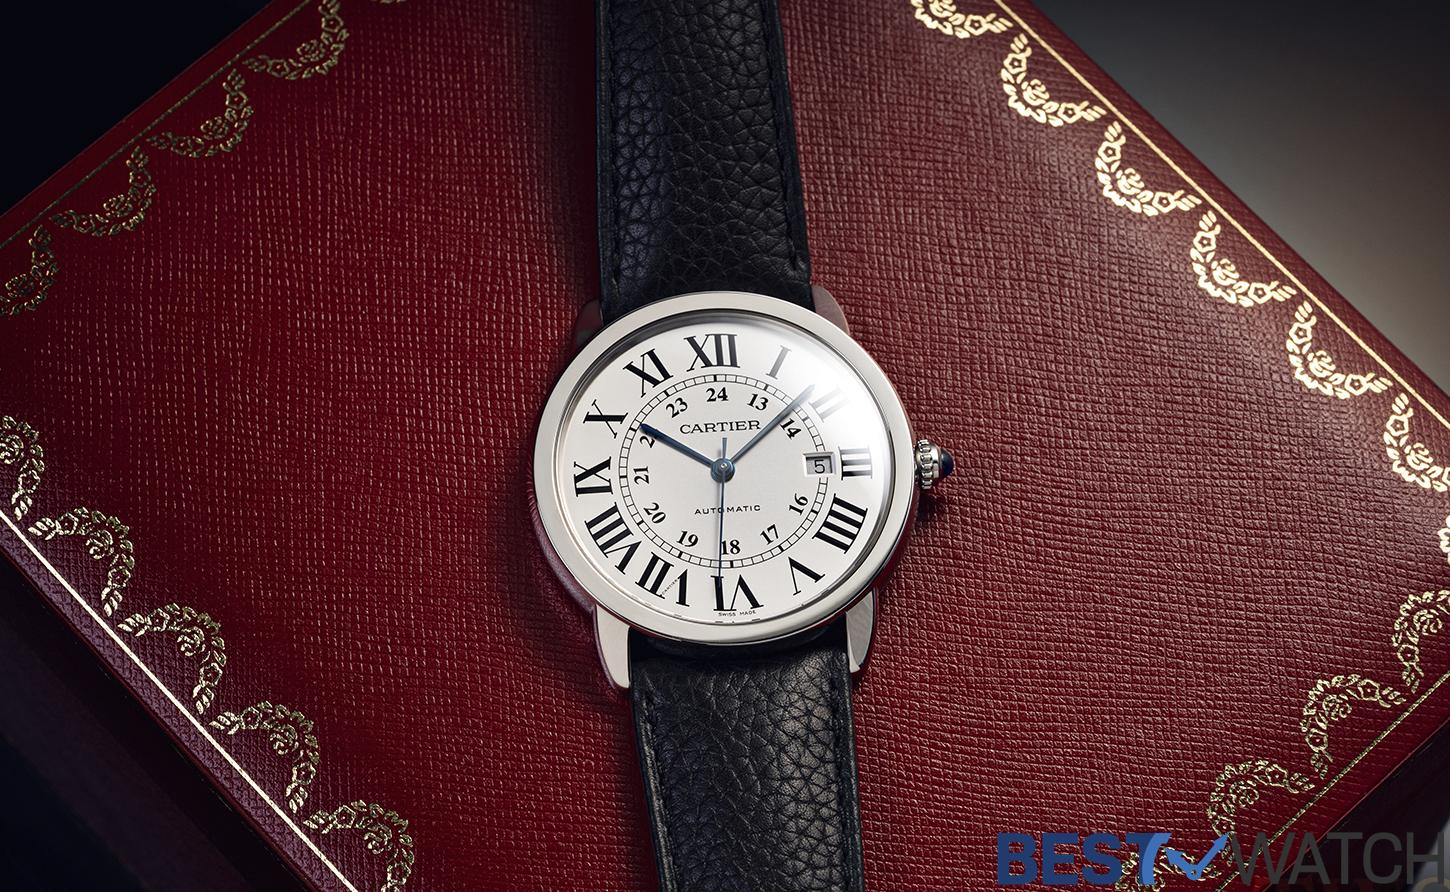 6 Notable Cartier Watches That Every Fan of The Tank-Design Should Have